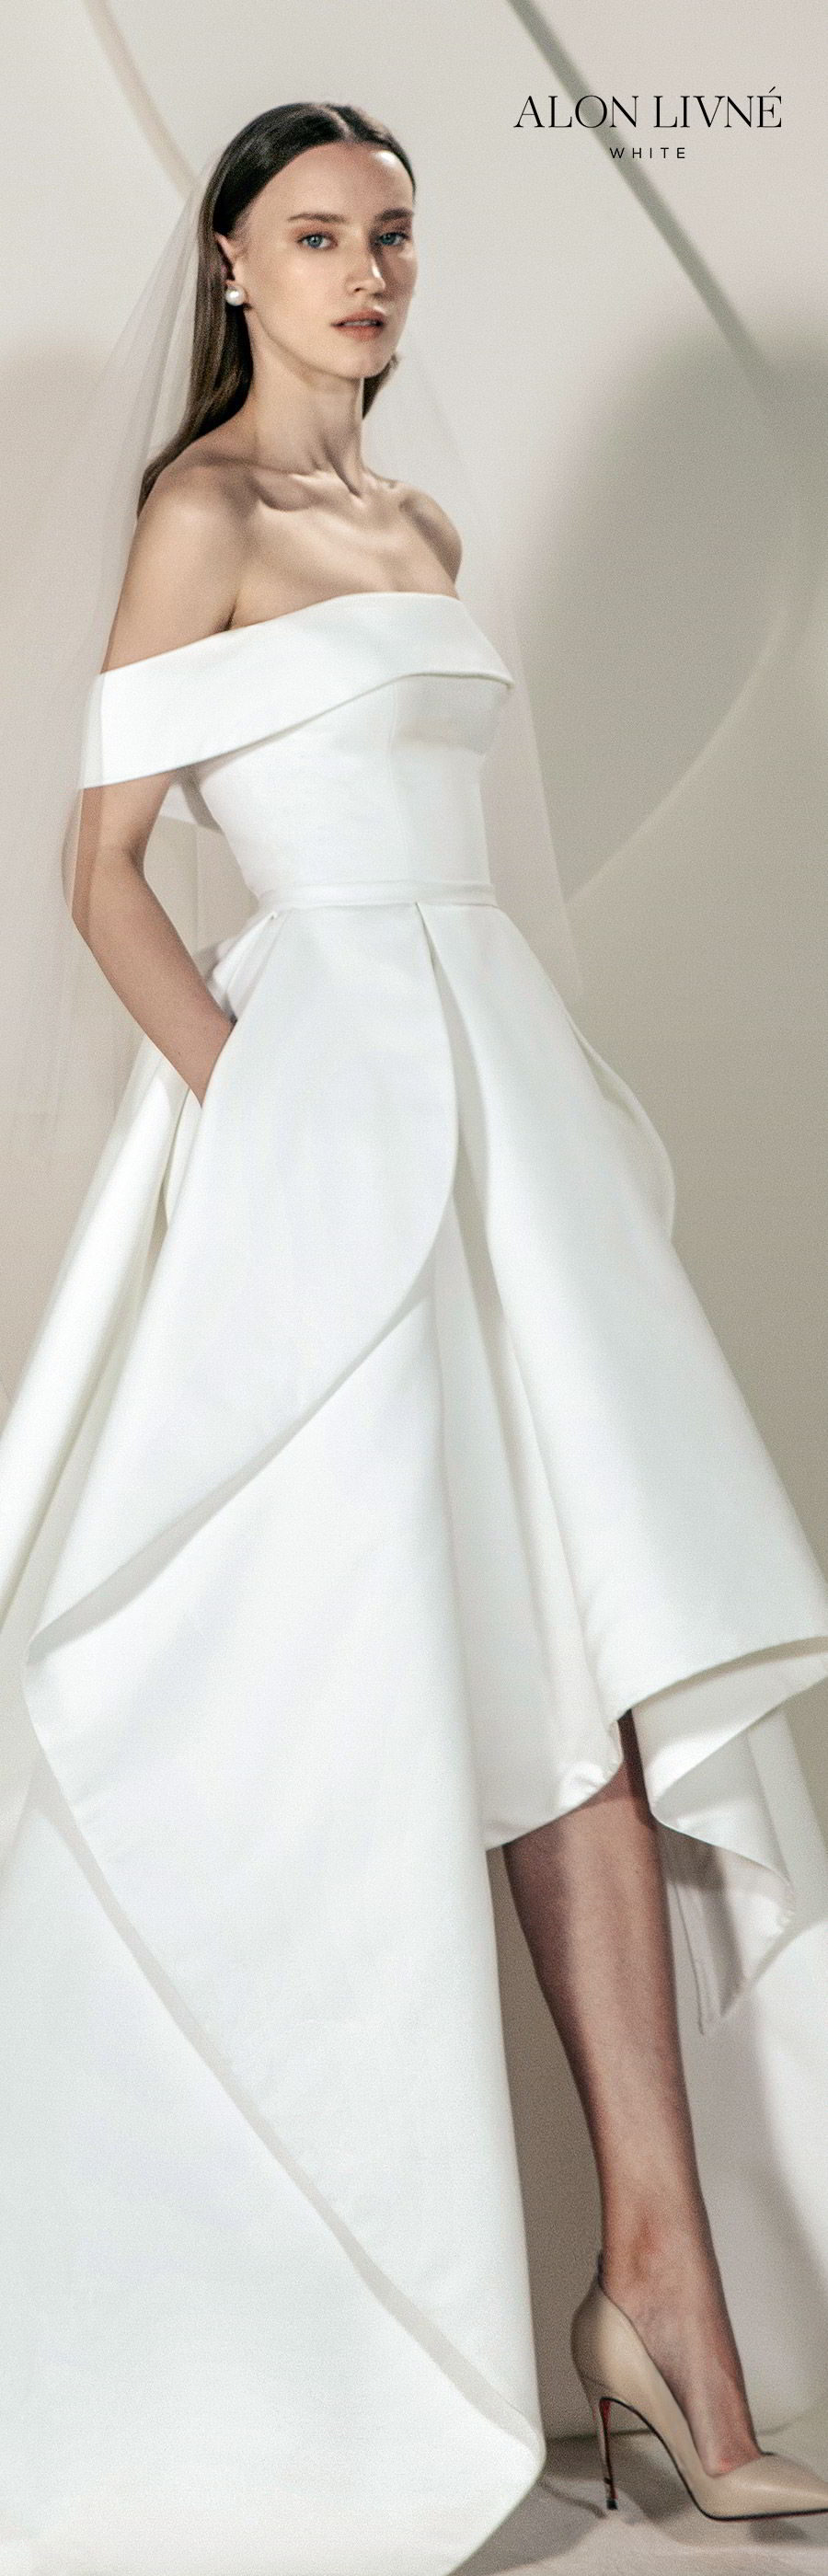 alon livne white spring 2020 bridal off shoulder straight across neckline foldover ball gown a line simple wedding dress high low skirt pocket (erica) clean minimal modern chic lv